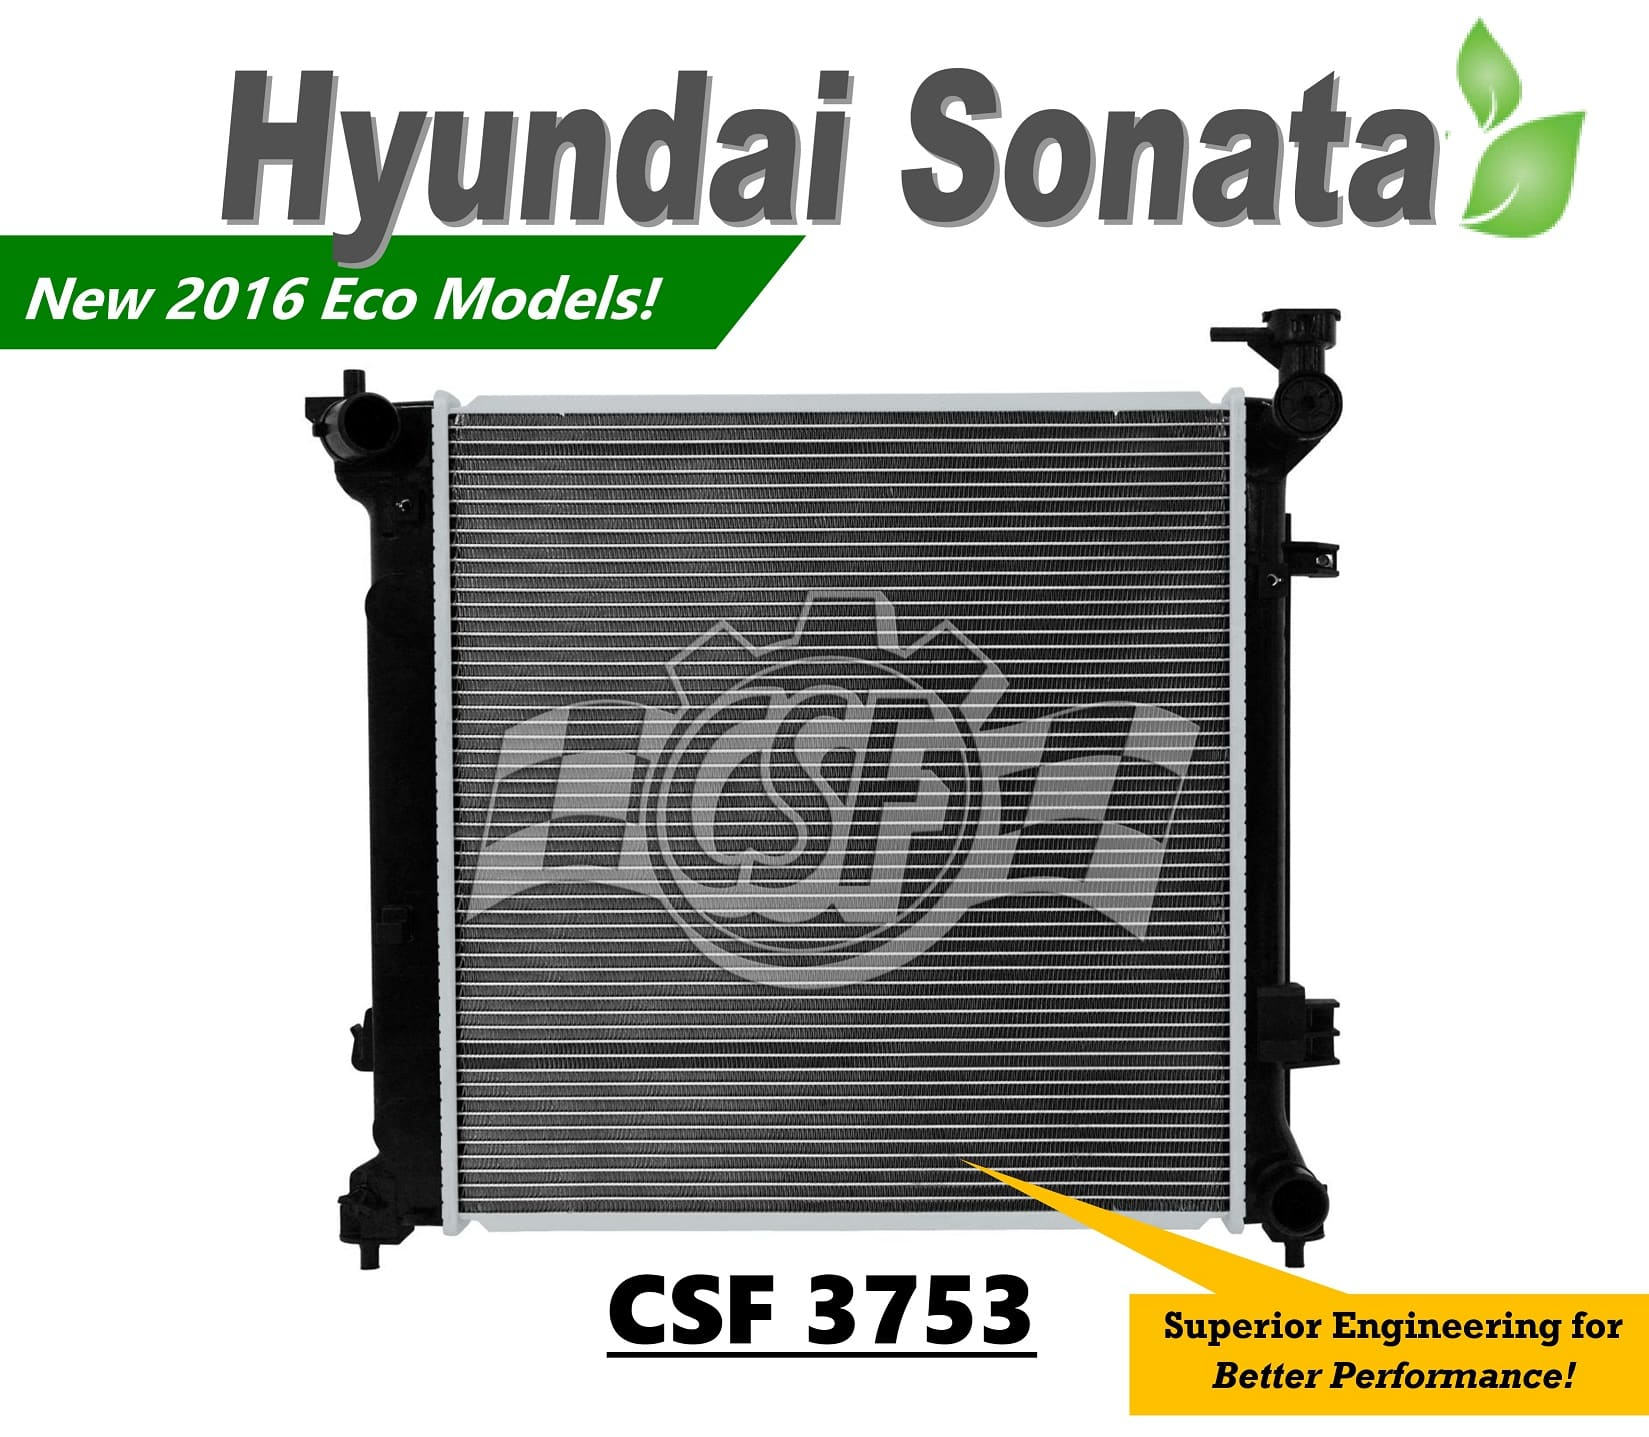 2016 Sonata Eco Radiator by CSF Radiators, the Cooling Experts